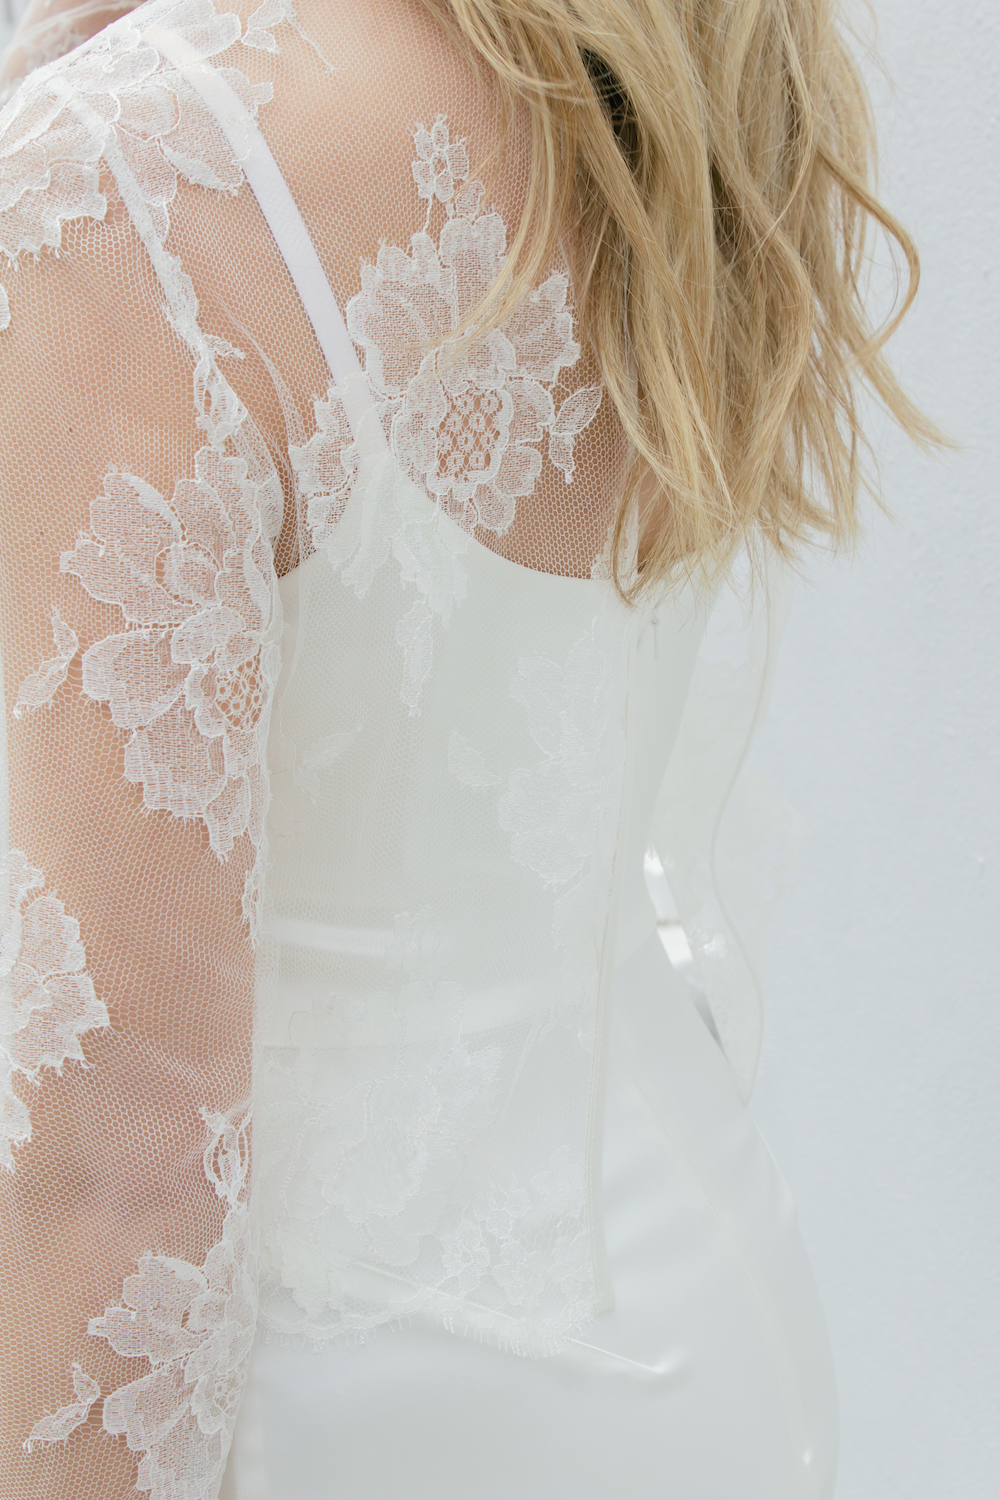 Dion wedding dress and Carlisle lace top by Halfpenny London | Available on Net-A-Porter